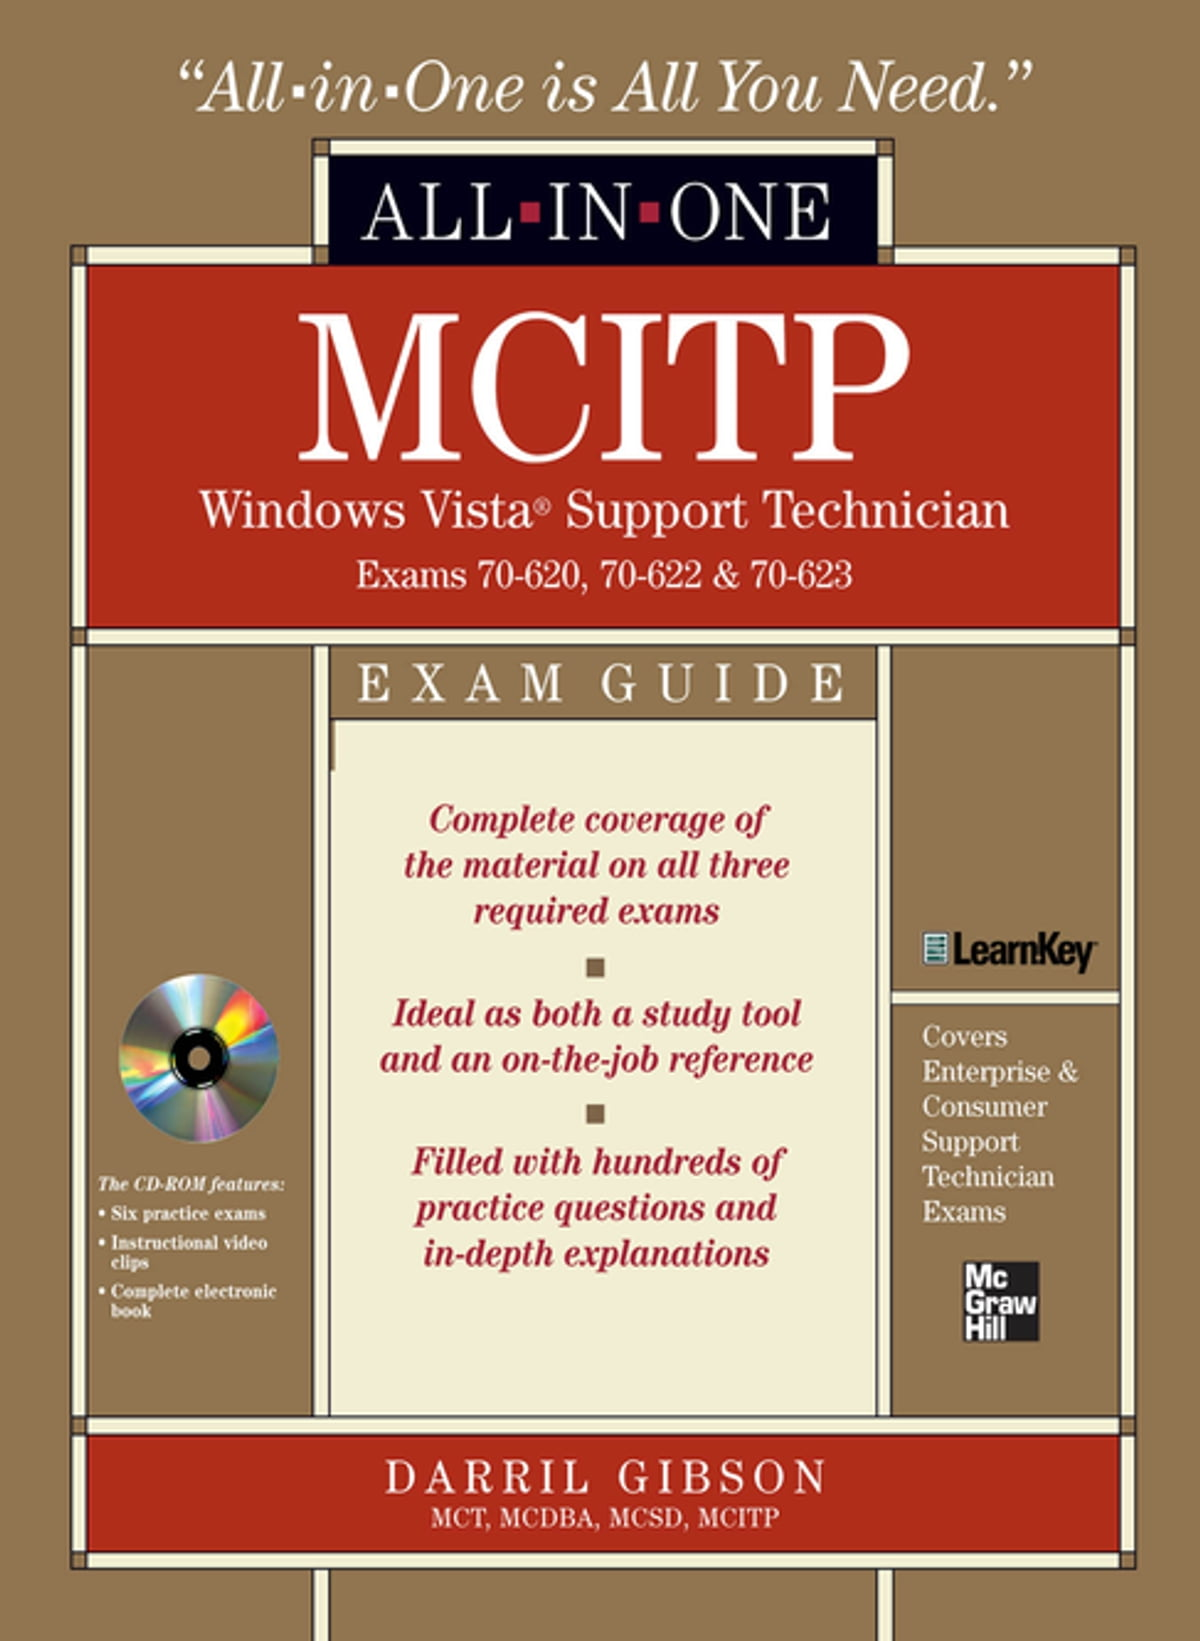 Mcitp Windows Vista Support Technician All In One Exam Guide Exam